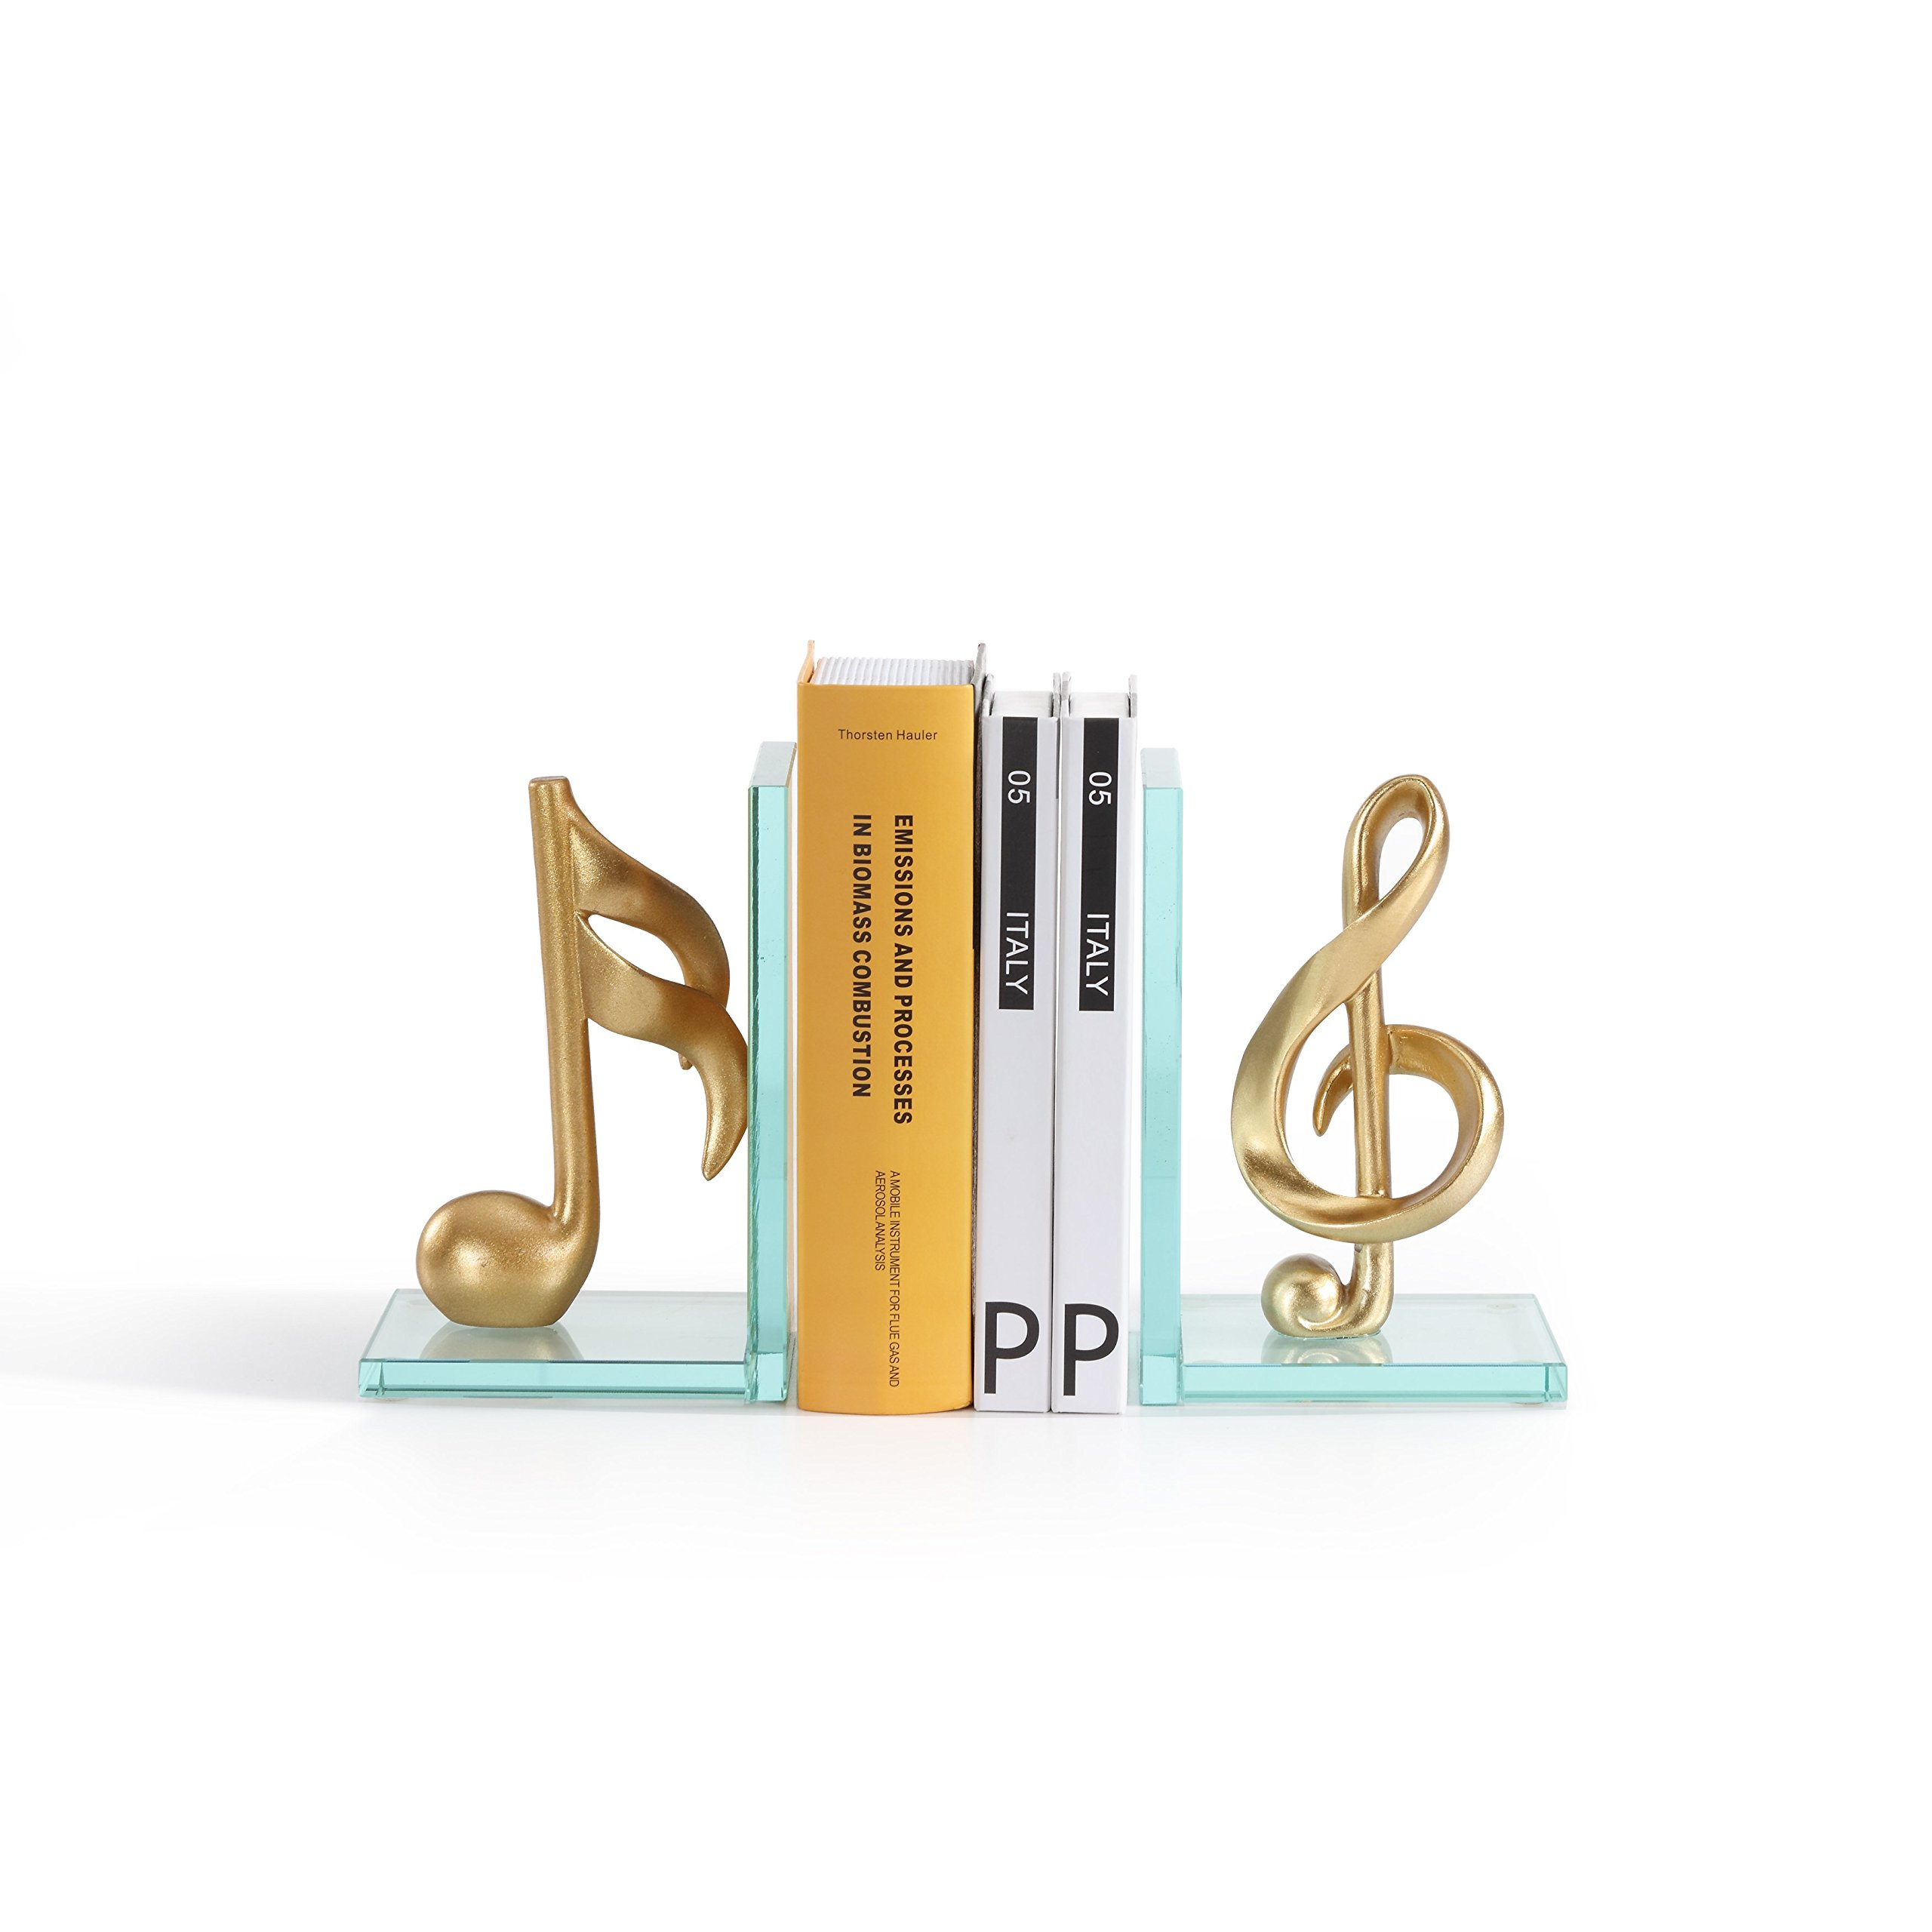 Danya B. DS840 Decorative Gold Musical Notes Glass Bookends for Musicians and Music Lovers by Danya B